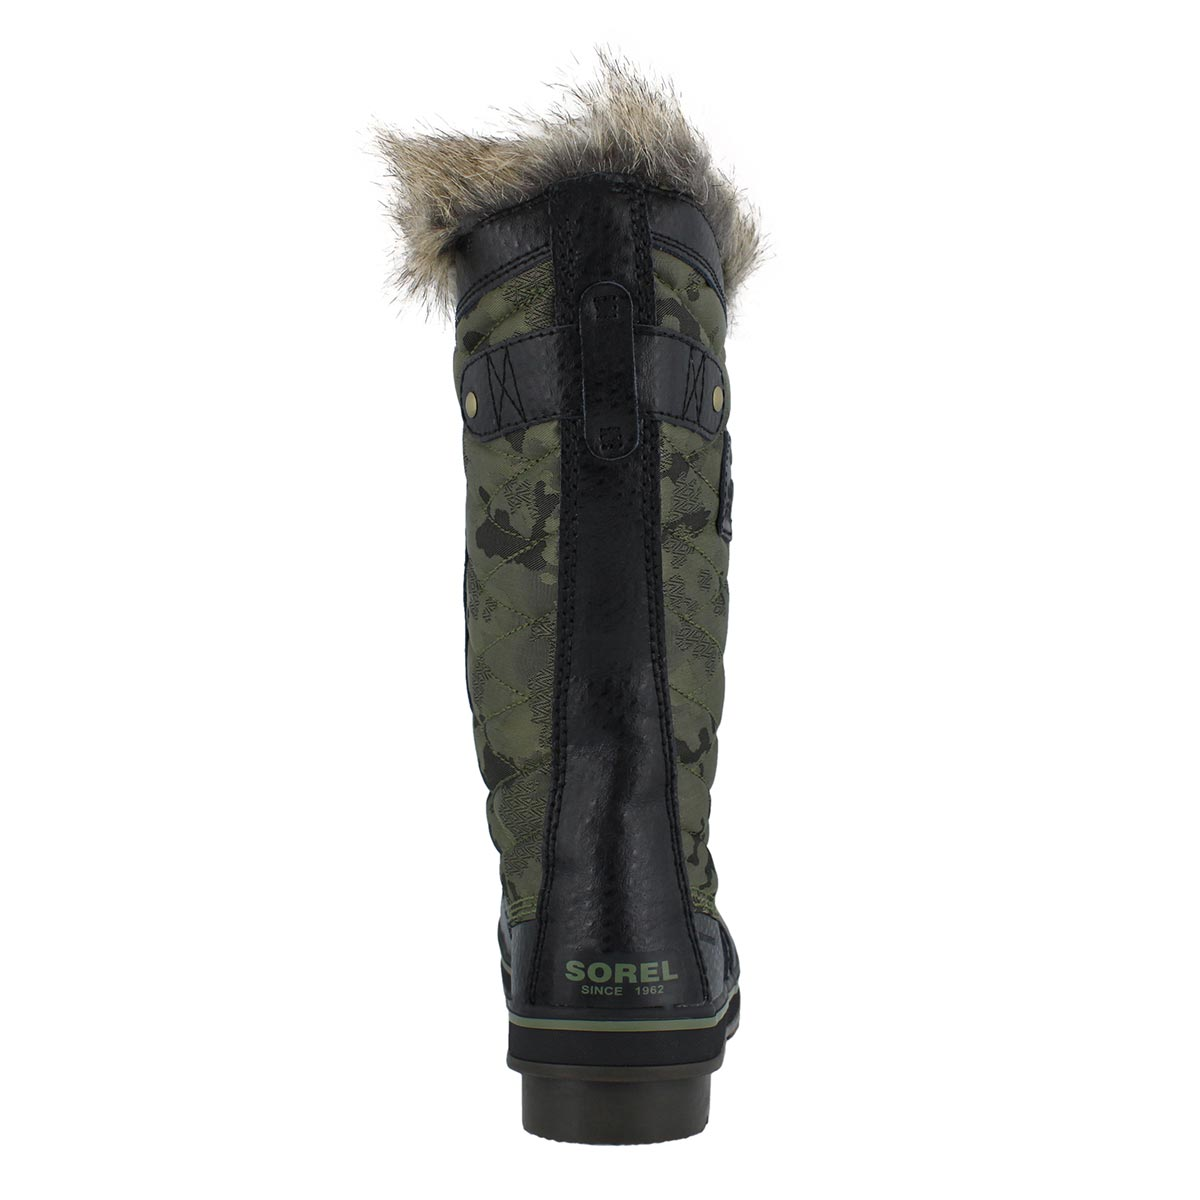 Lds Tofino II hiker green wtpf boot